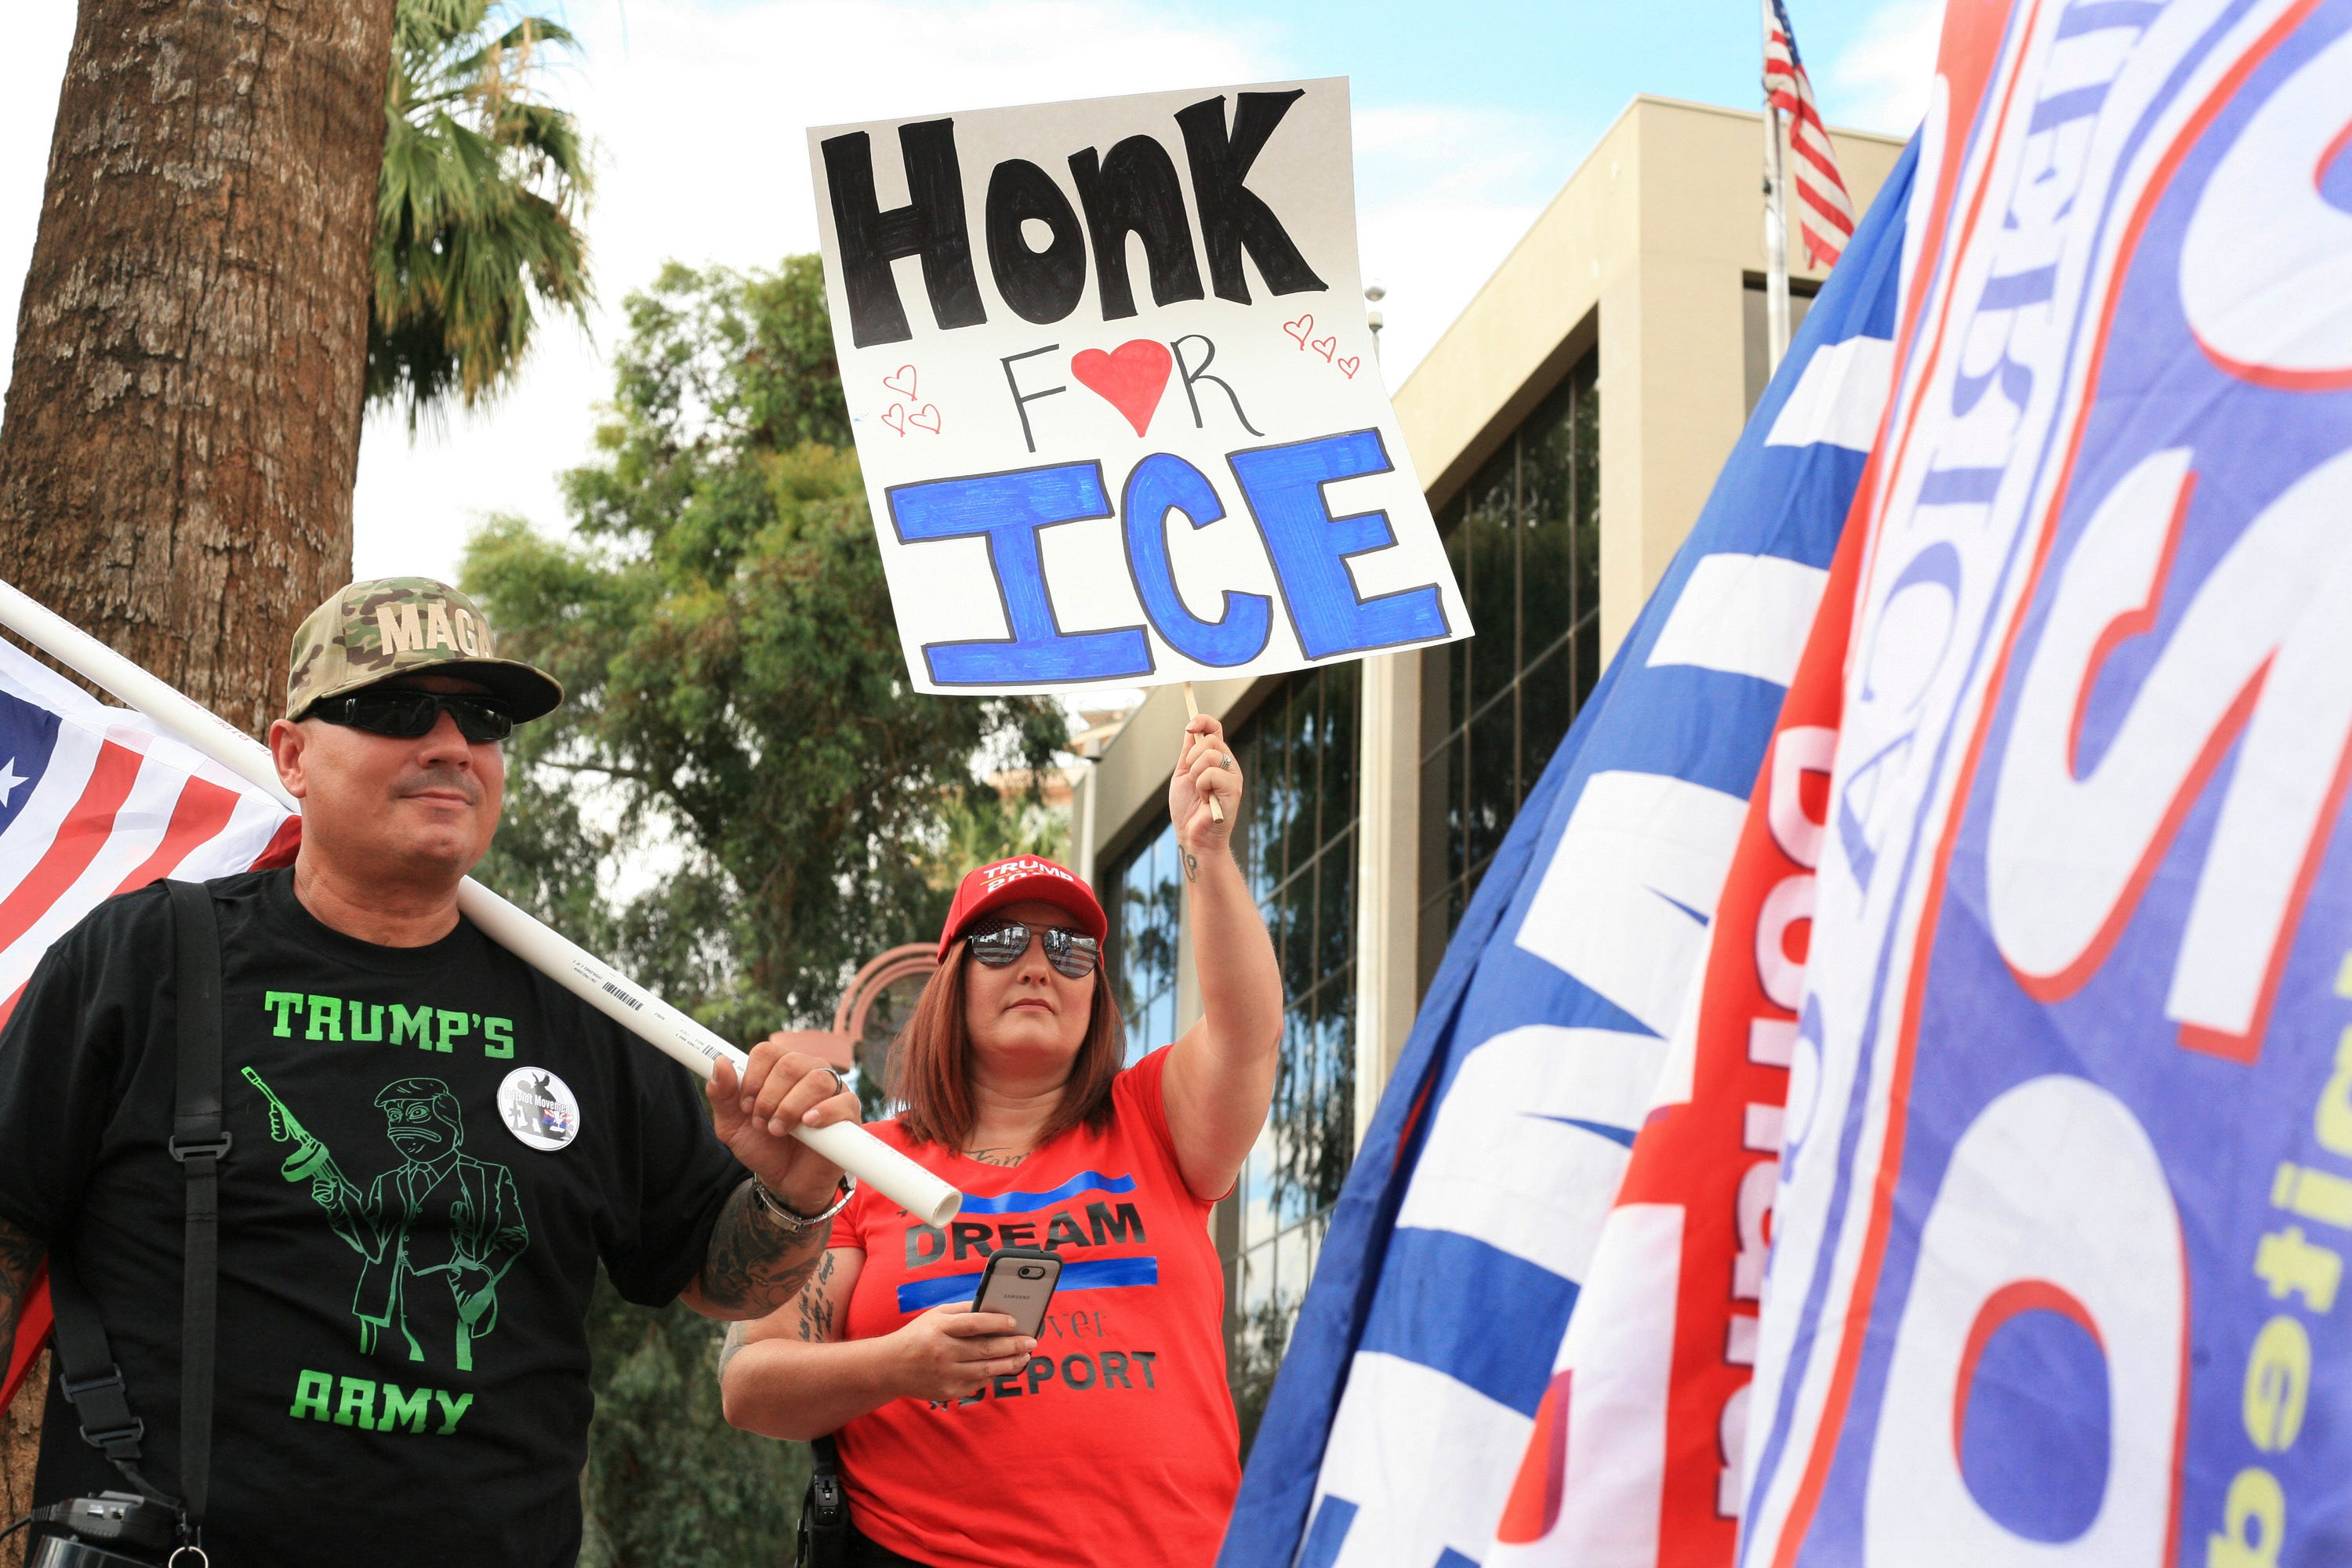 Members of Patriot Movement AZ gather outside of the U.S. Immigration Customs and Enforcement Removal Operations Field Offices in Phoenix on July 10, 2018.